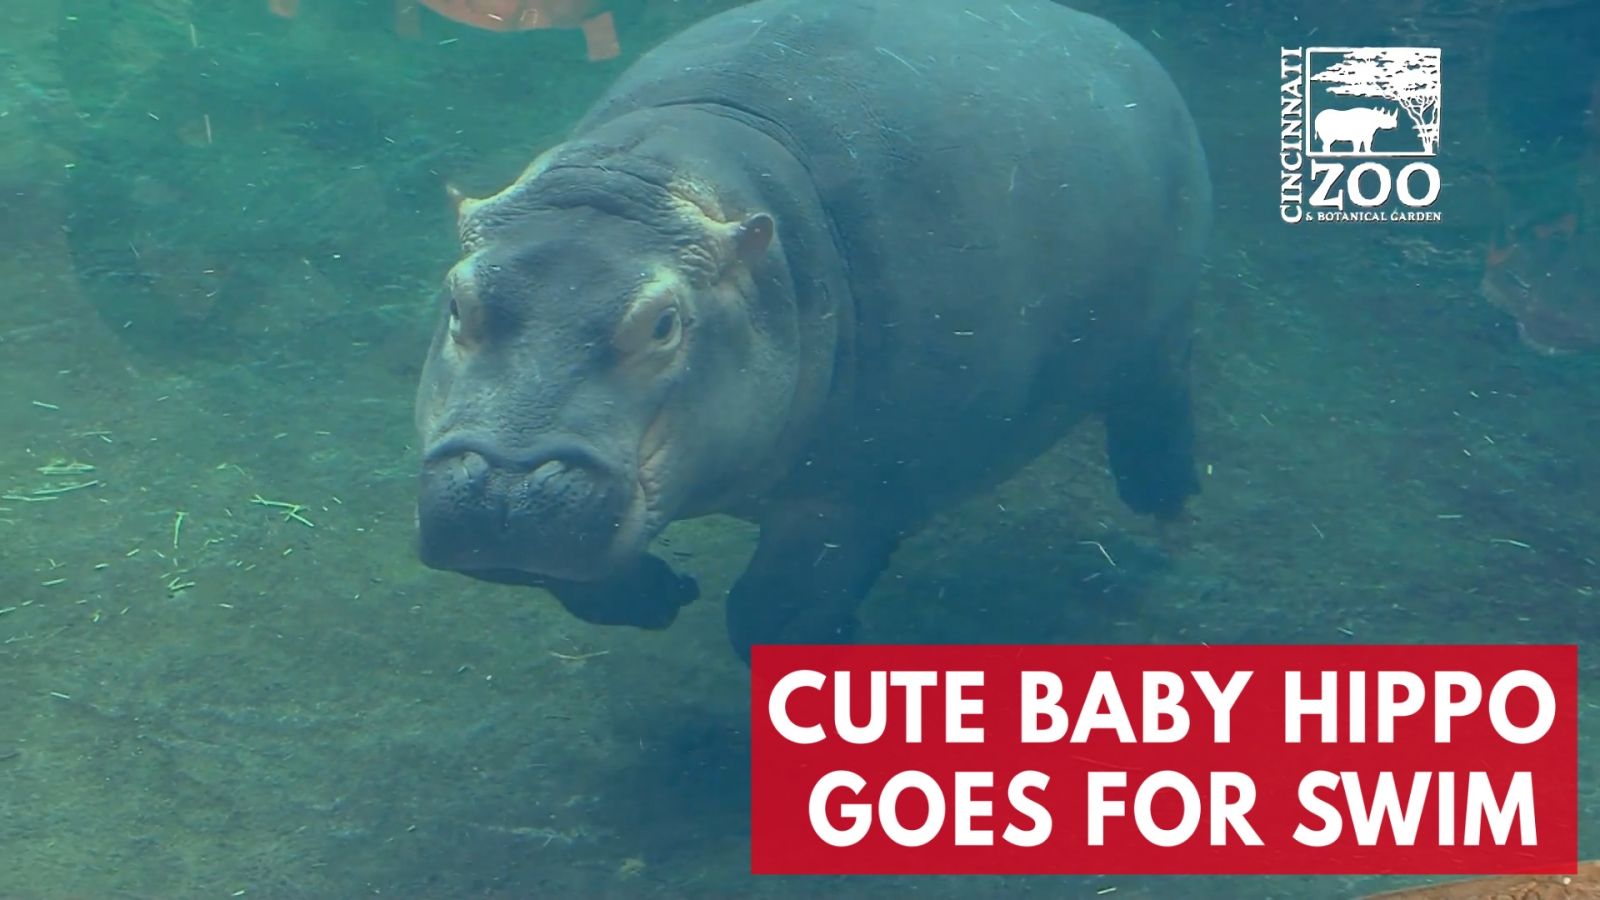 cute-baby-hippo-fiona-goes-for-a-swim-at-cincinnati-zoo-and-botanical-gardens